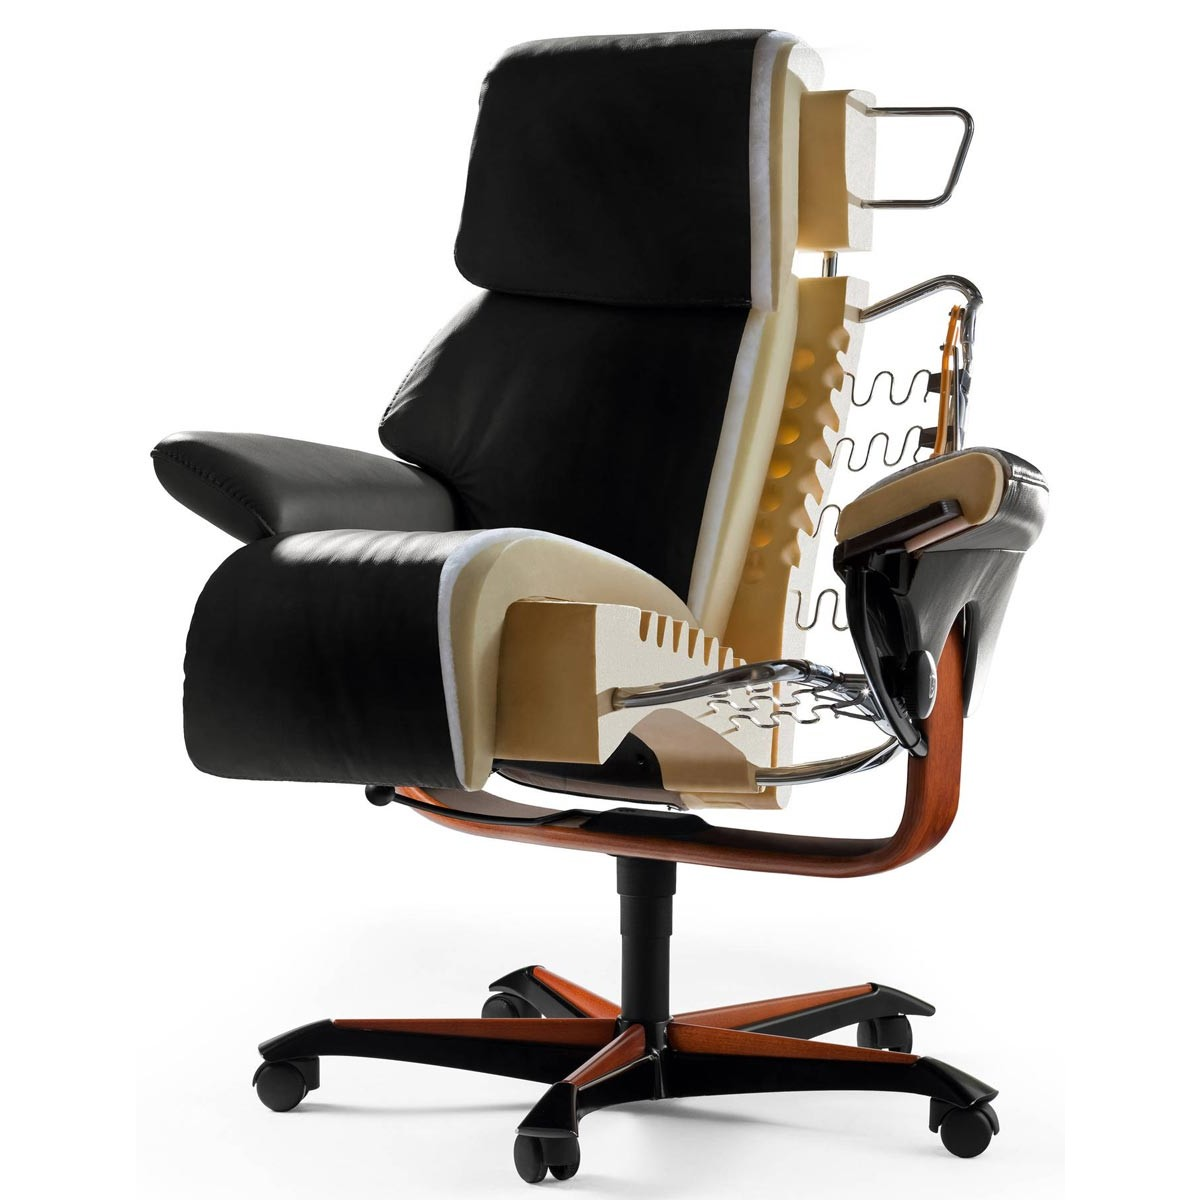 stressless reno office chair from 2 by stressless